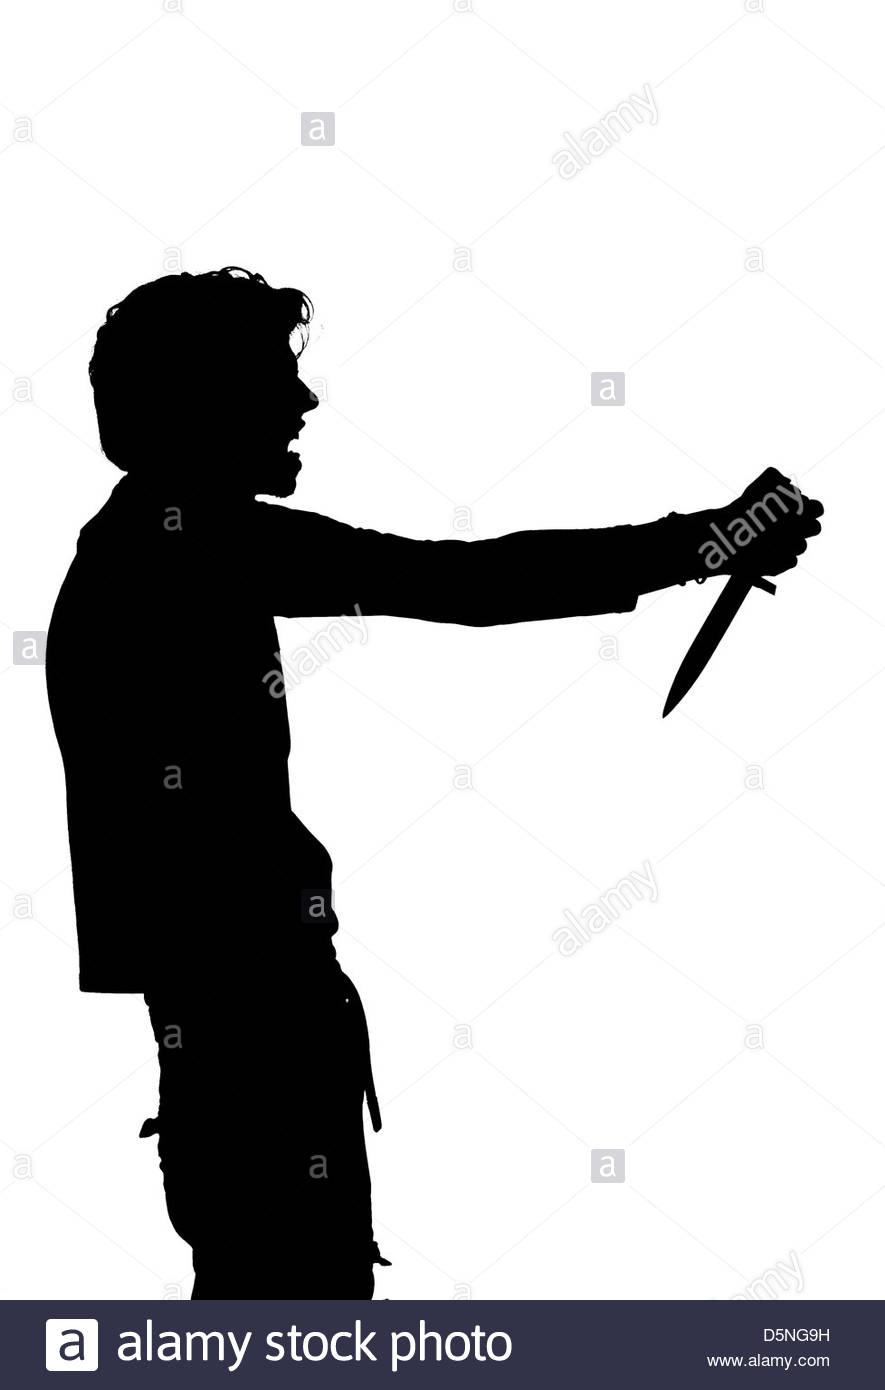 885x1390 Silhouette Of A Man Attempting Suicide Knife Stock Photo 55178189